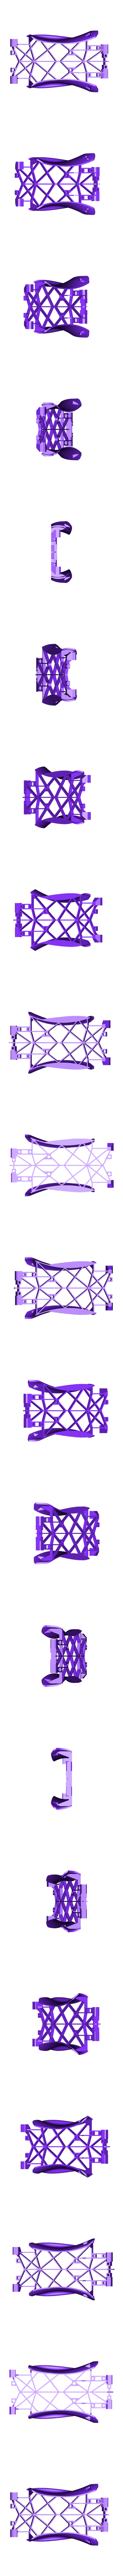 Chassis.stl Download free STL file Dragster • 3D printable design, FerryTeacher